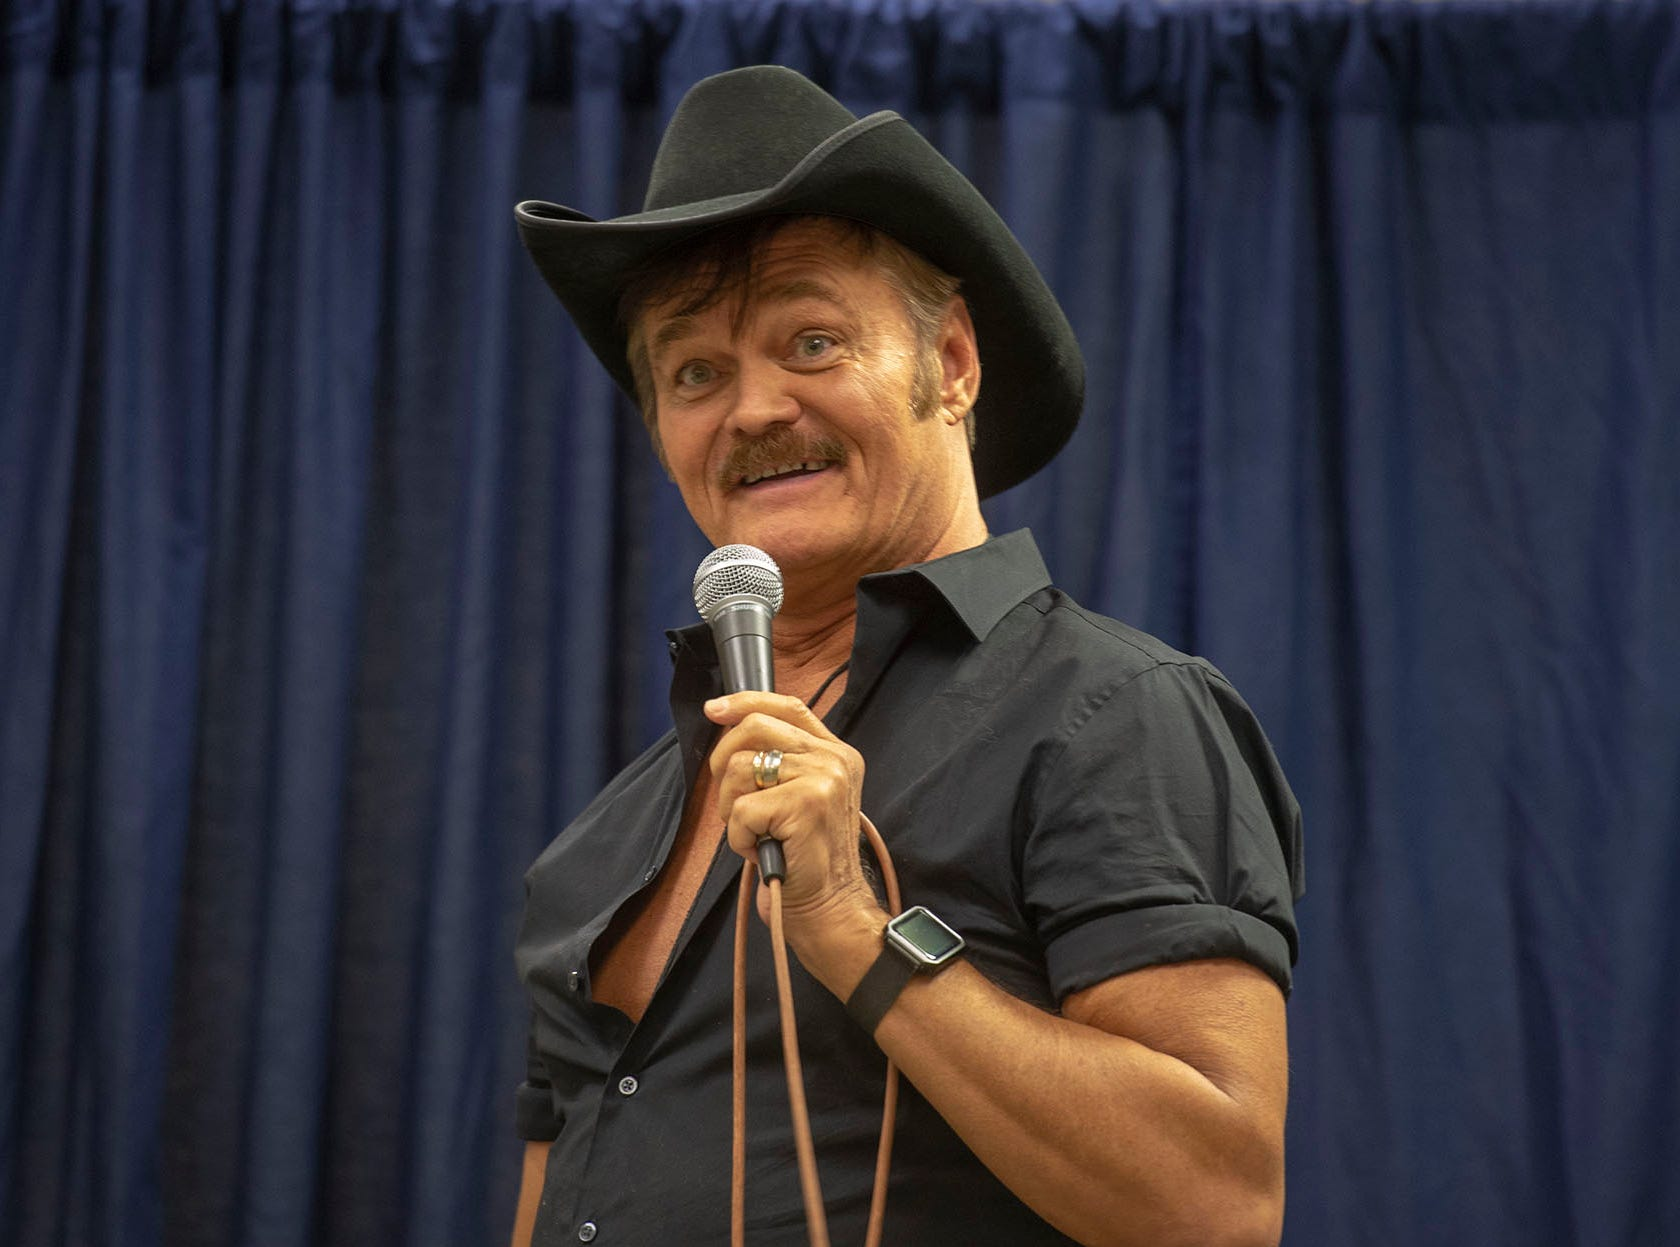 Randy Jones, the original Cowboy of the Village People, sang a couple of songs on his own at the White Rose Comic Con, which runs through Sunday, March 24, 2019 at Utz Arena of the York Fairgrounds.